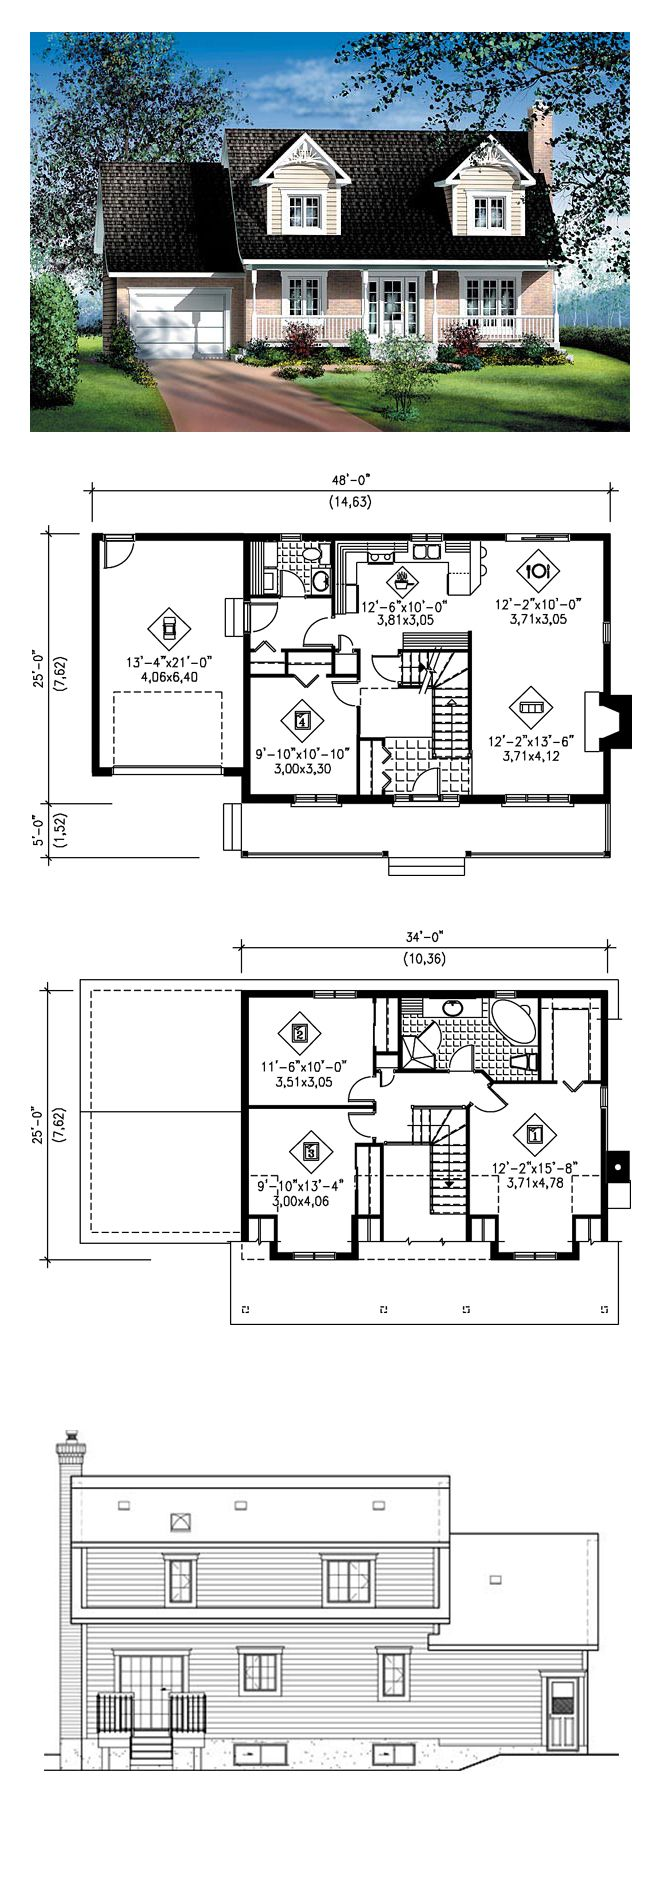 Cape cod house plan 49687 total living area 1564 sq ft for 1 5 story cape cod house plans